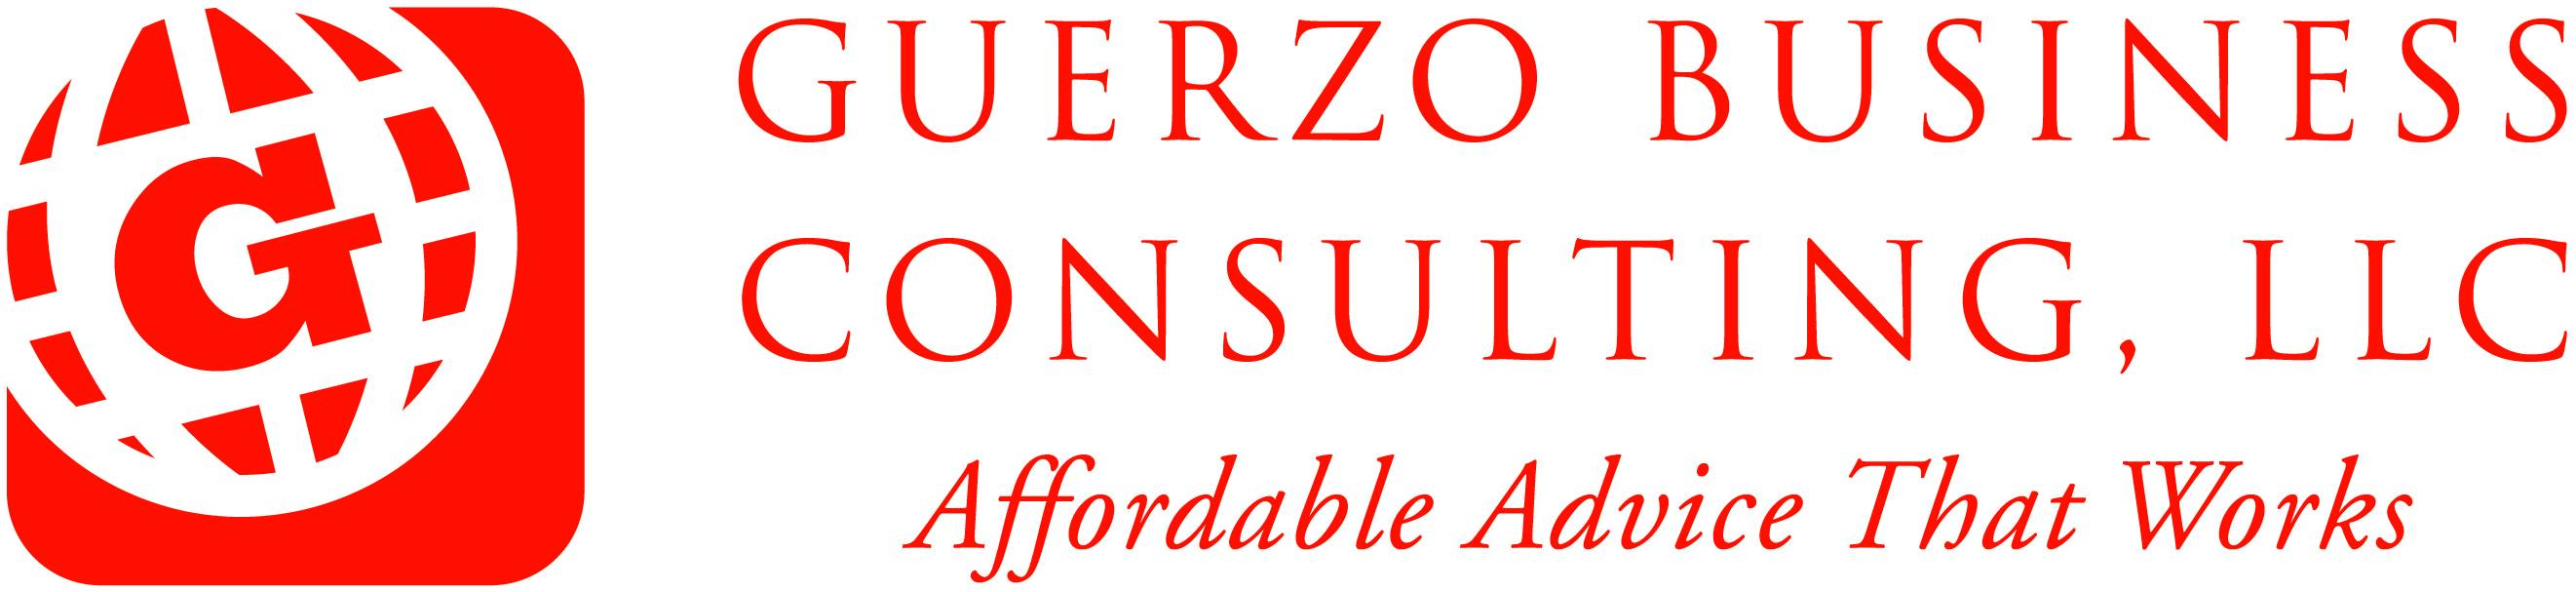 Guerzo Business Consulting